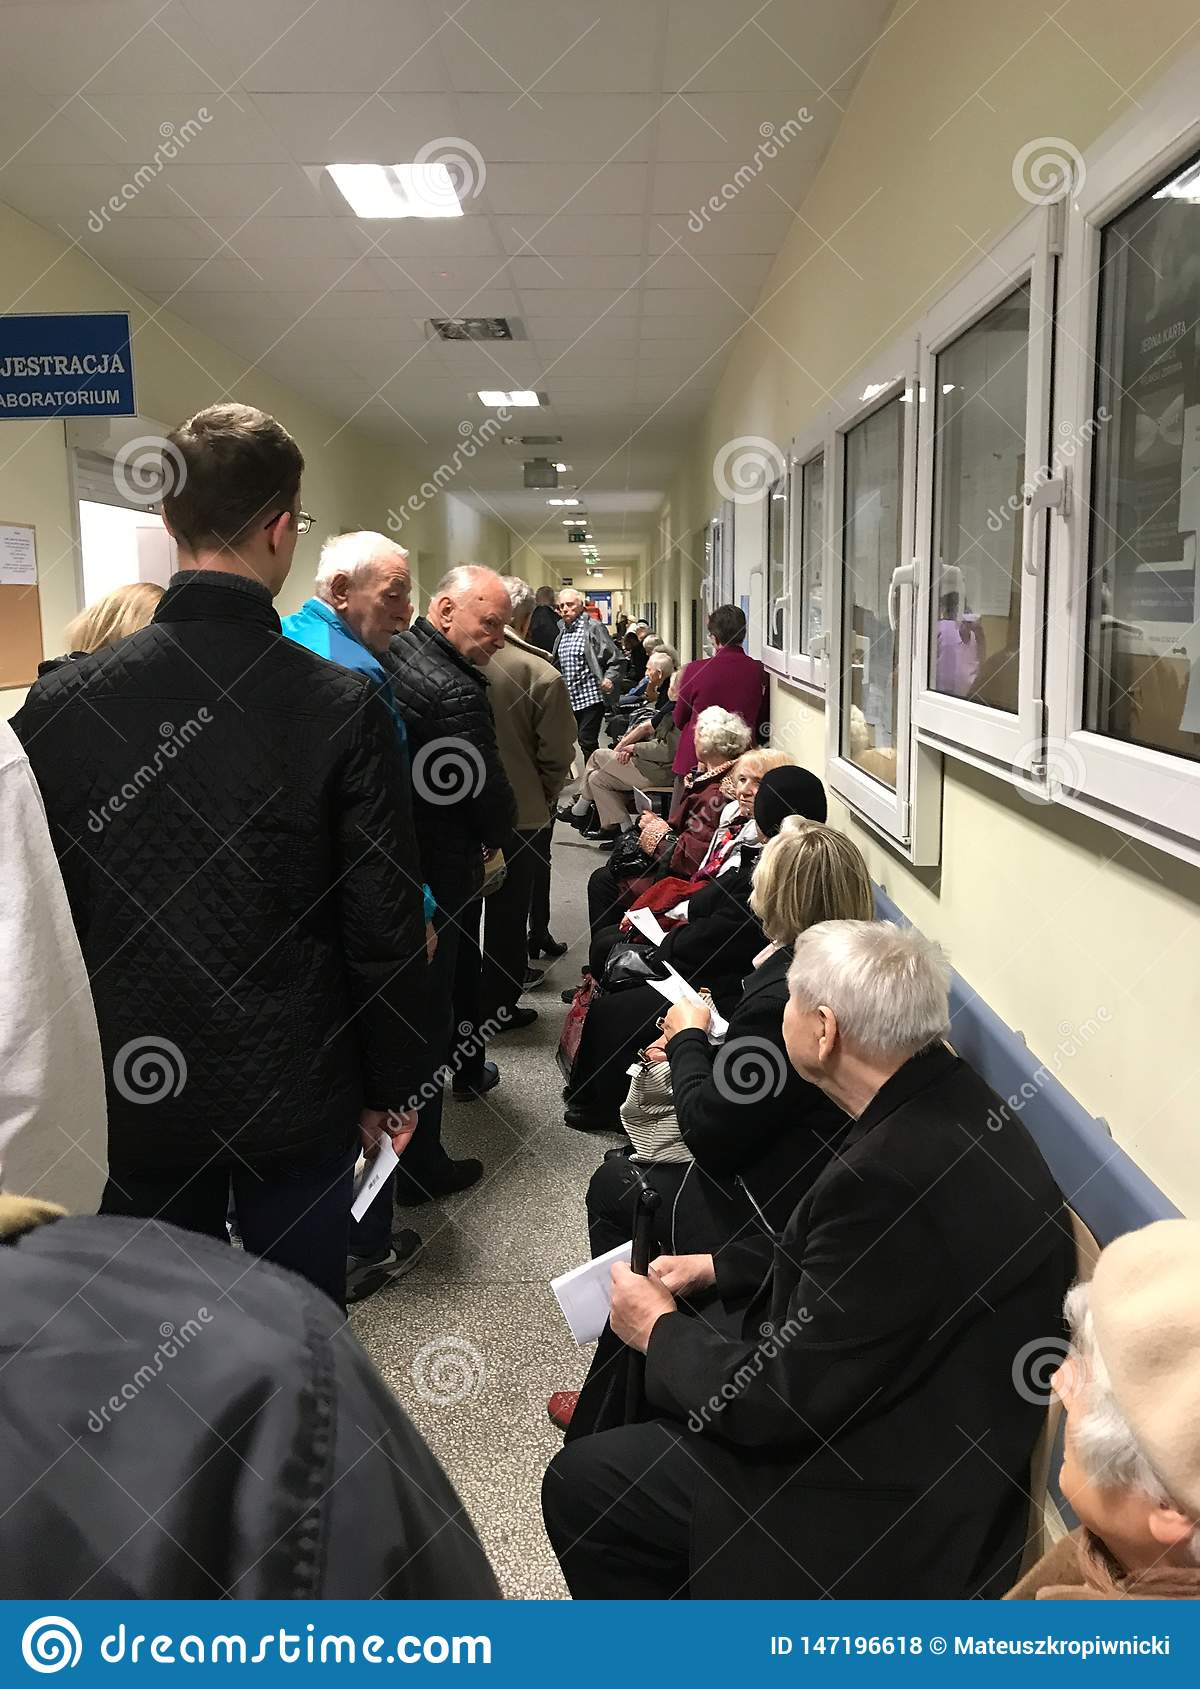 Wrocław, Poland - May 6 2019: Patients of public healthcare waiting in long line to registration room. The line is so long that